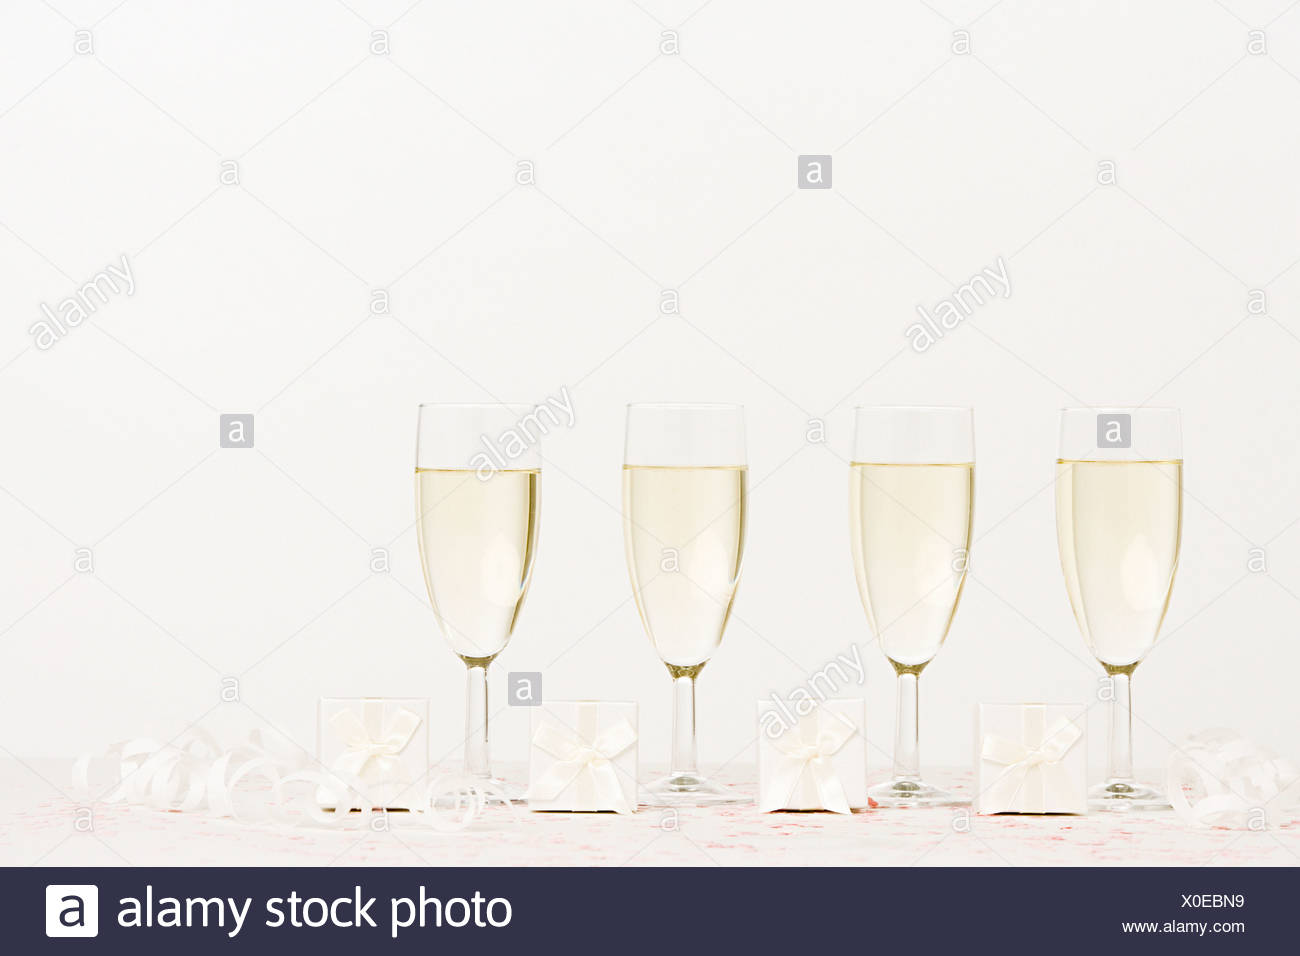 Flutes And Wedding Presents Stock Photos & Flutes And Wedding ...